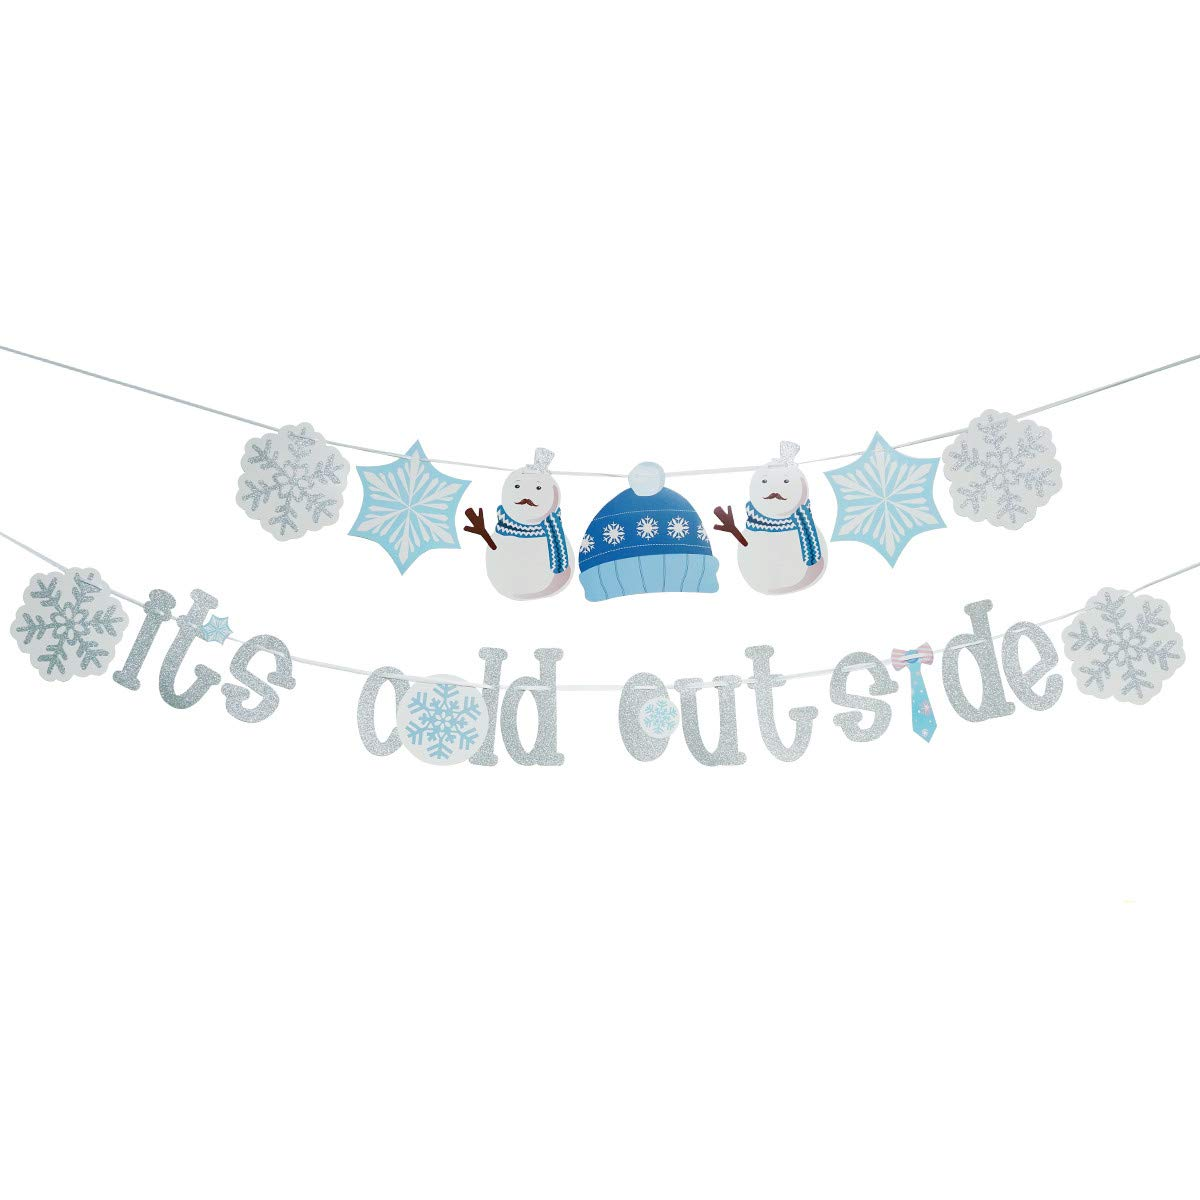 Baby It's Cold Outside Banner - Christmas Snowflake Winter Holiday Home Decor Garland Winter Party Decorations Baby Shower Party Photo Props